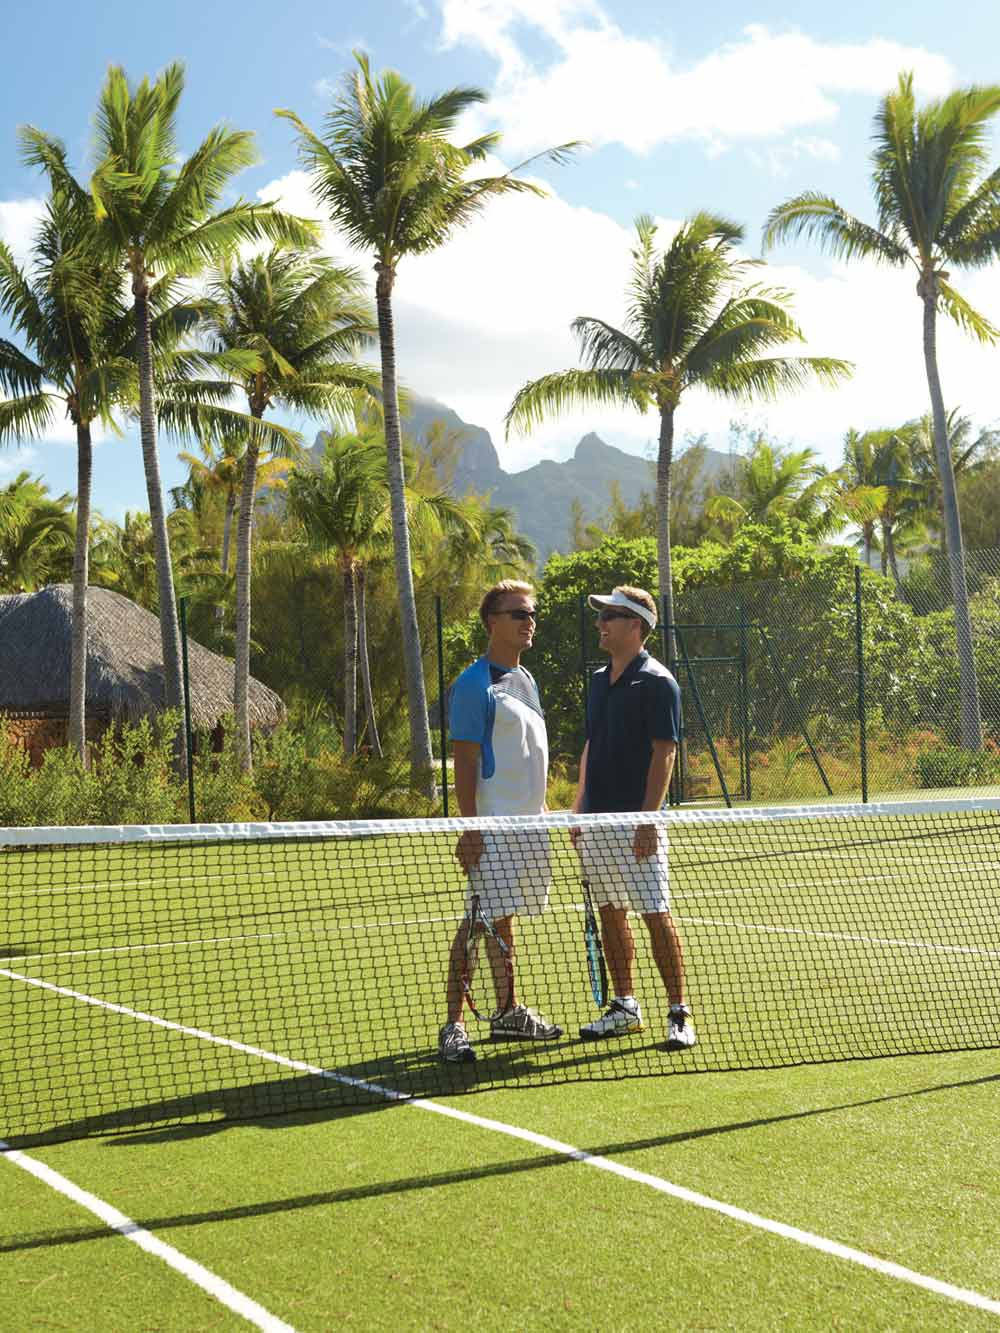 Tennis at Four Seasons Resort Bora BoraFrench Polynesia